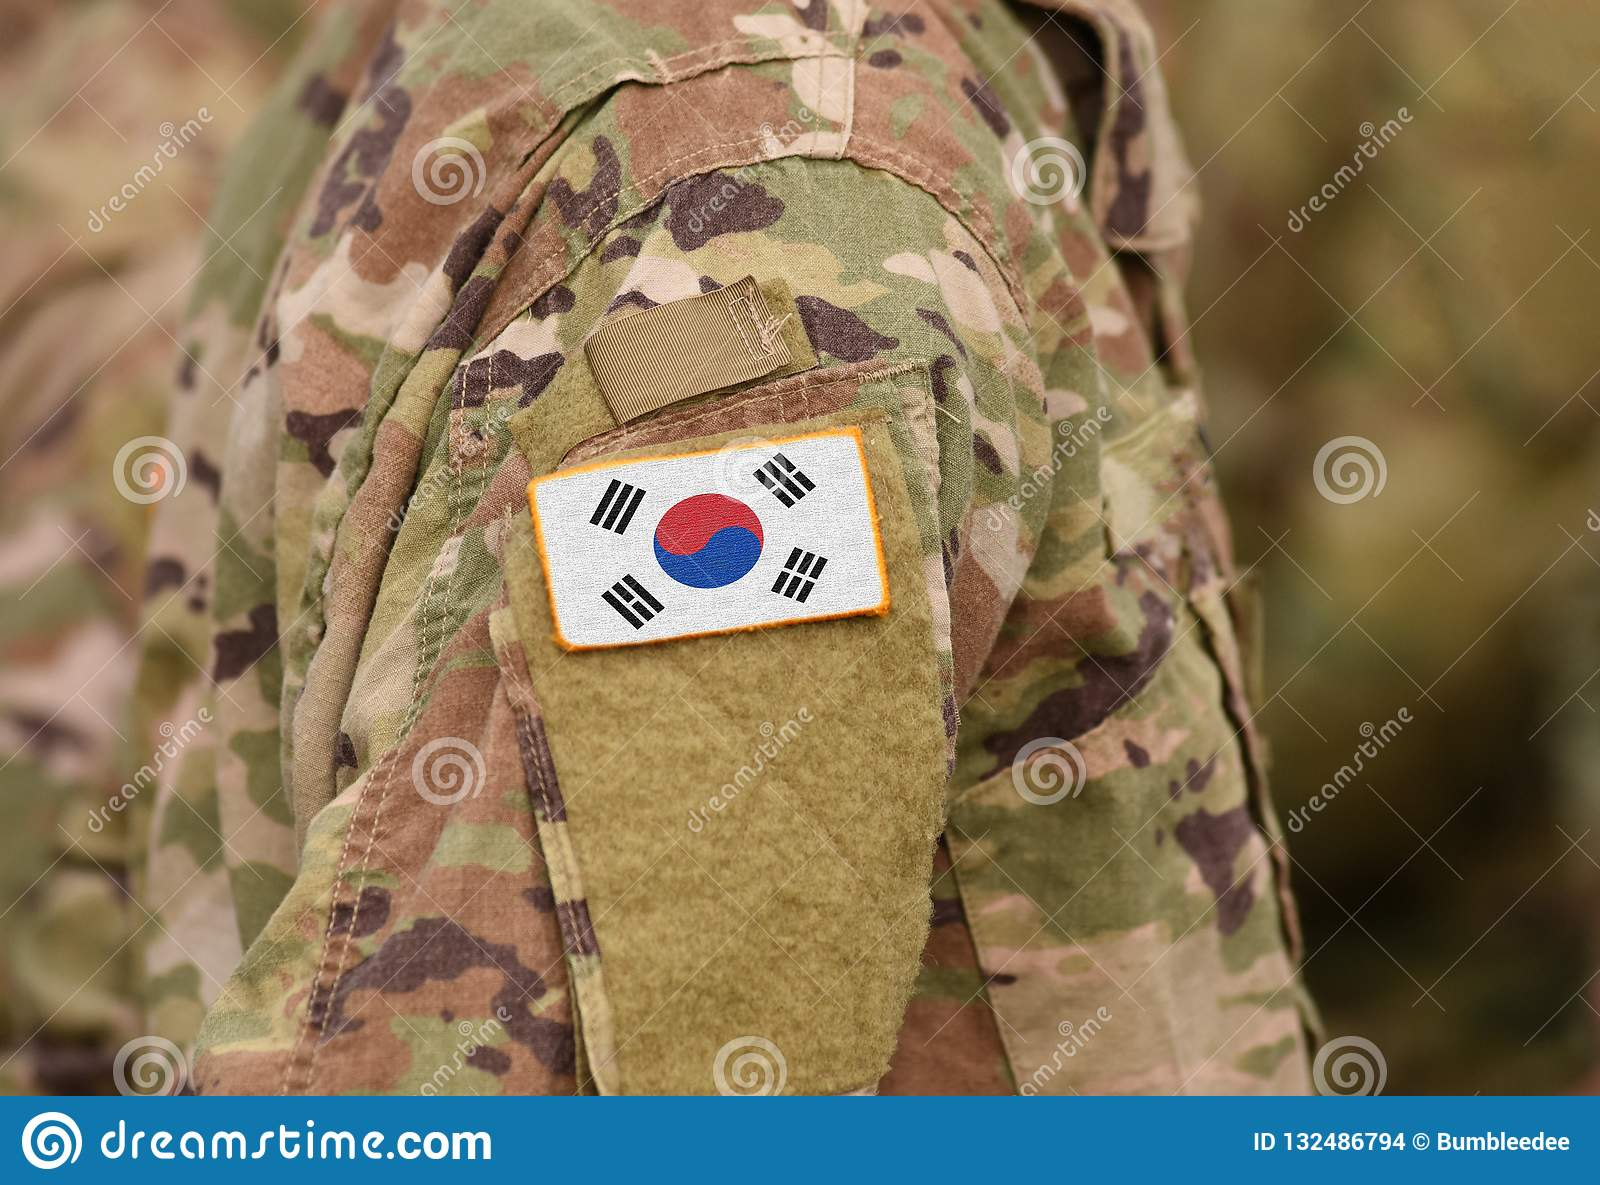 South Korea on soldiers arm collage